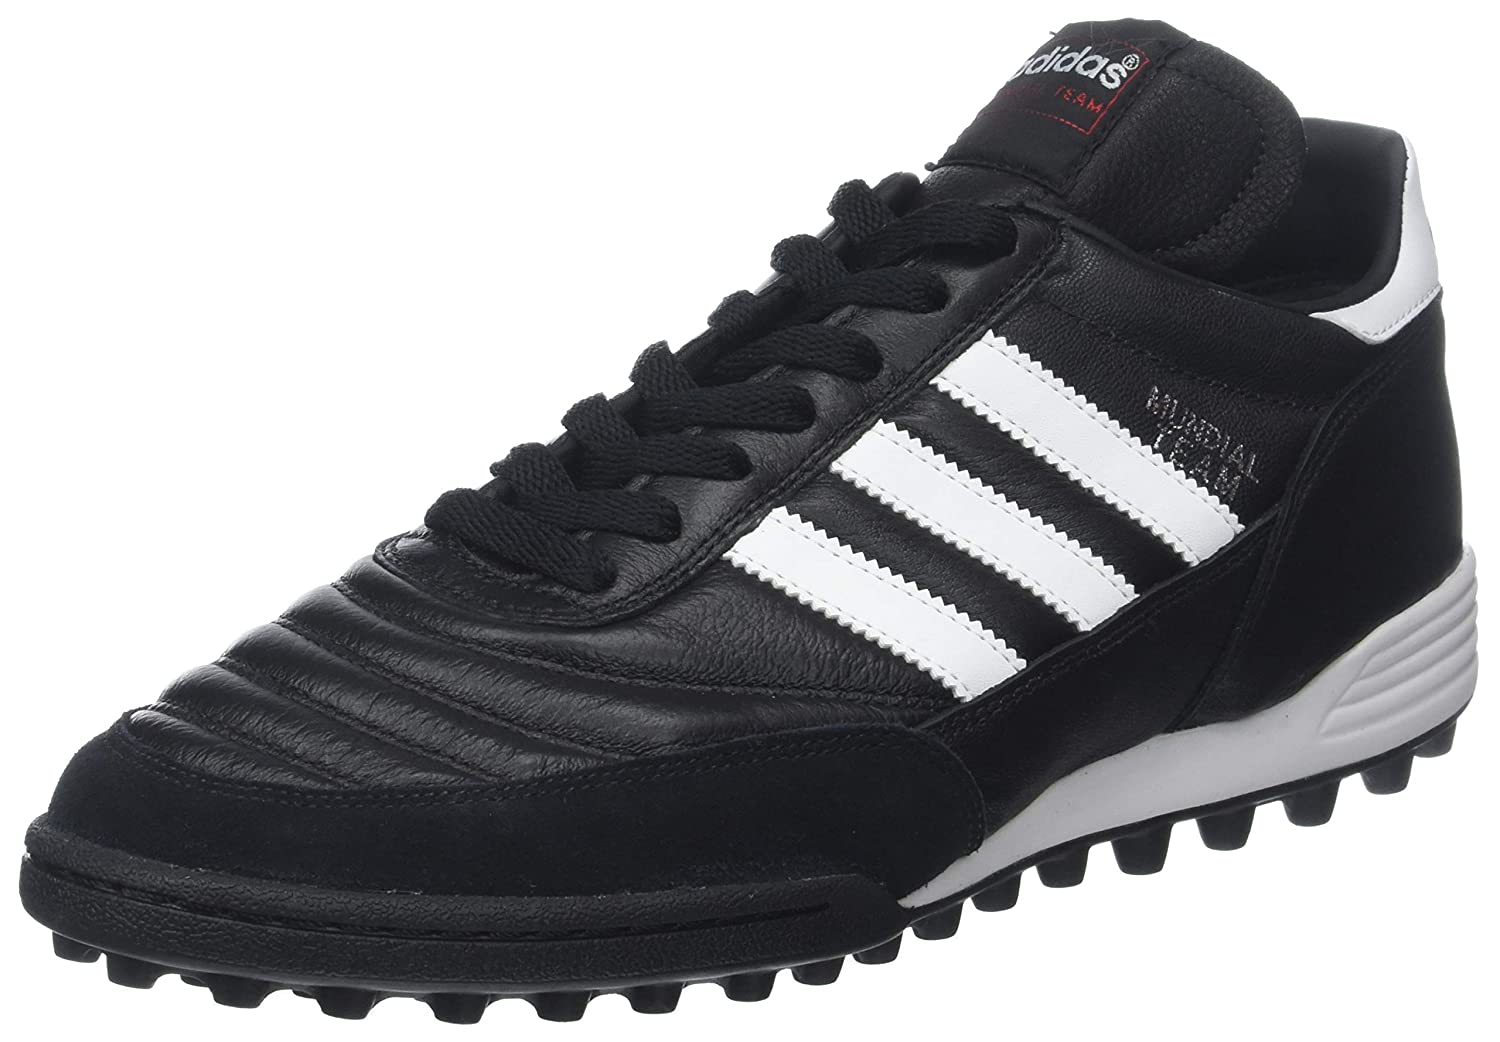 Mixte Adidas Adulte Football TeamChaussures De Mundial htdxrCsQ